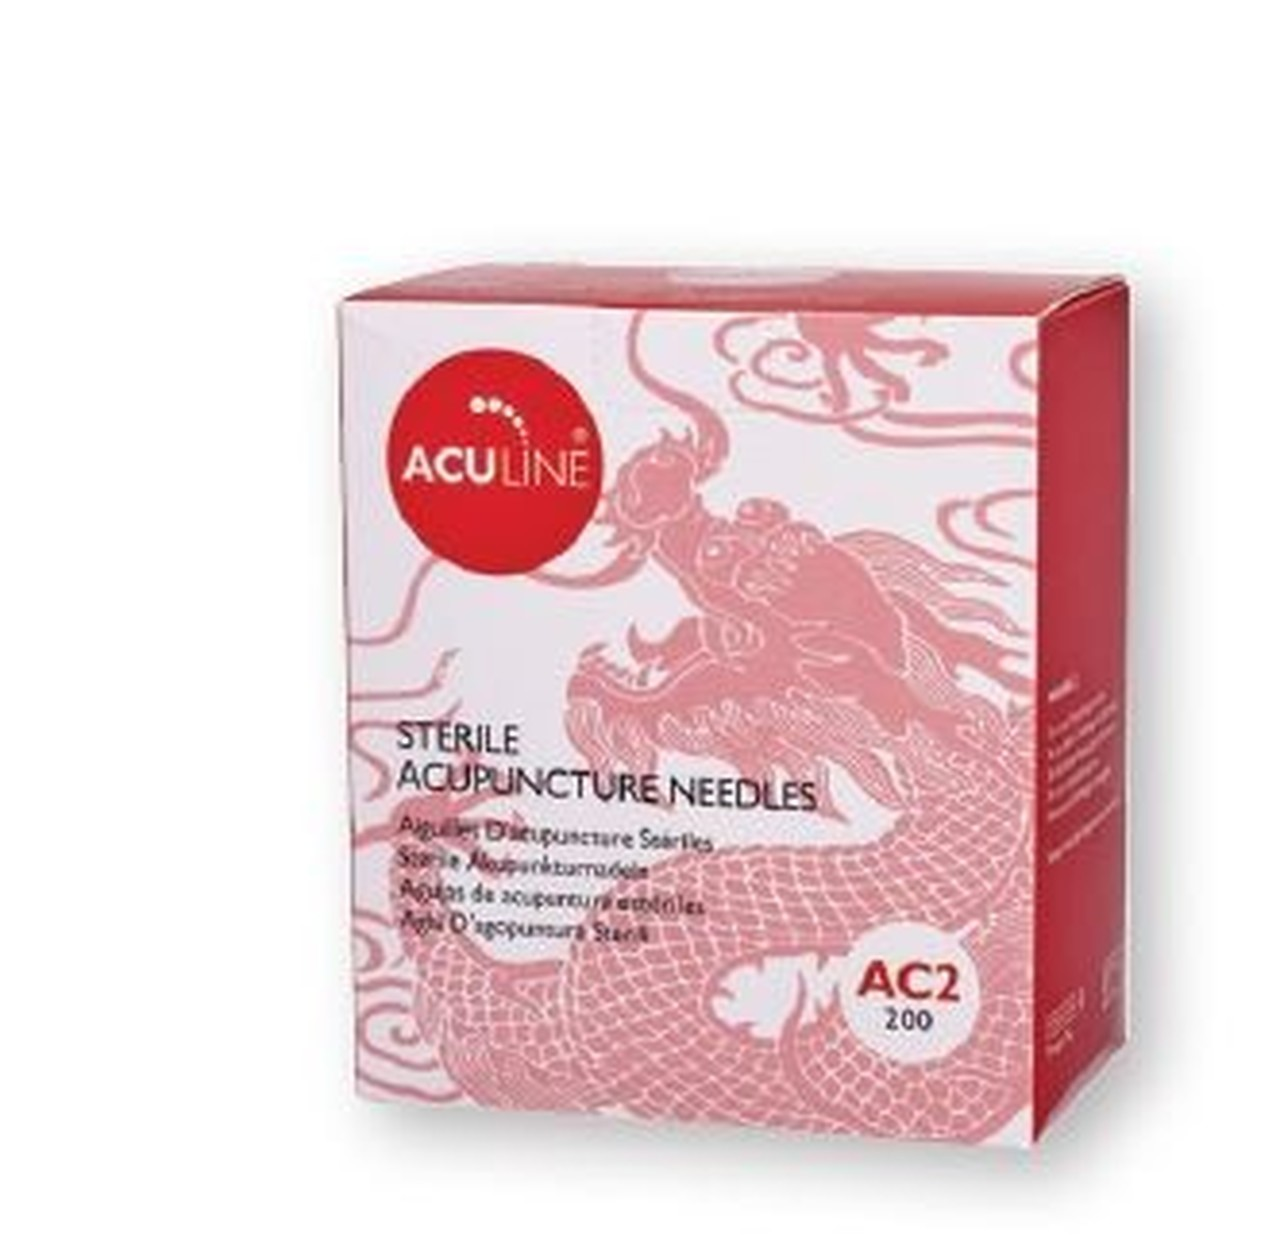 .22x40mm - Aculine Copper Handle Acupuncture Needles